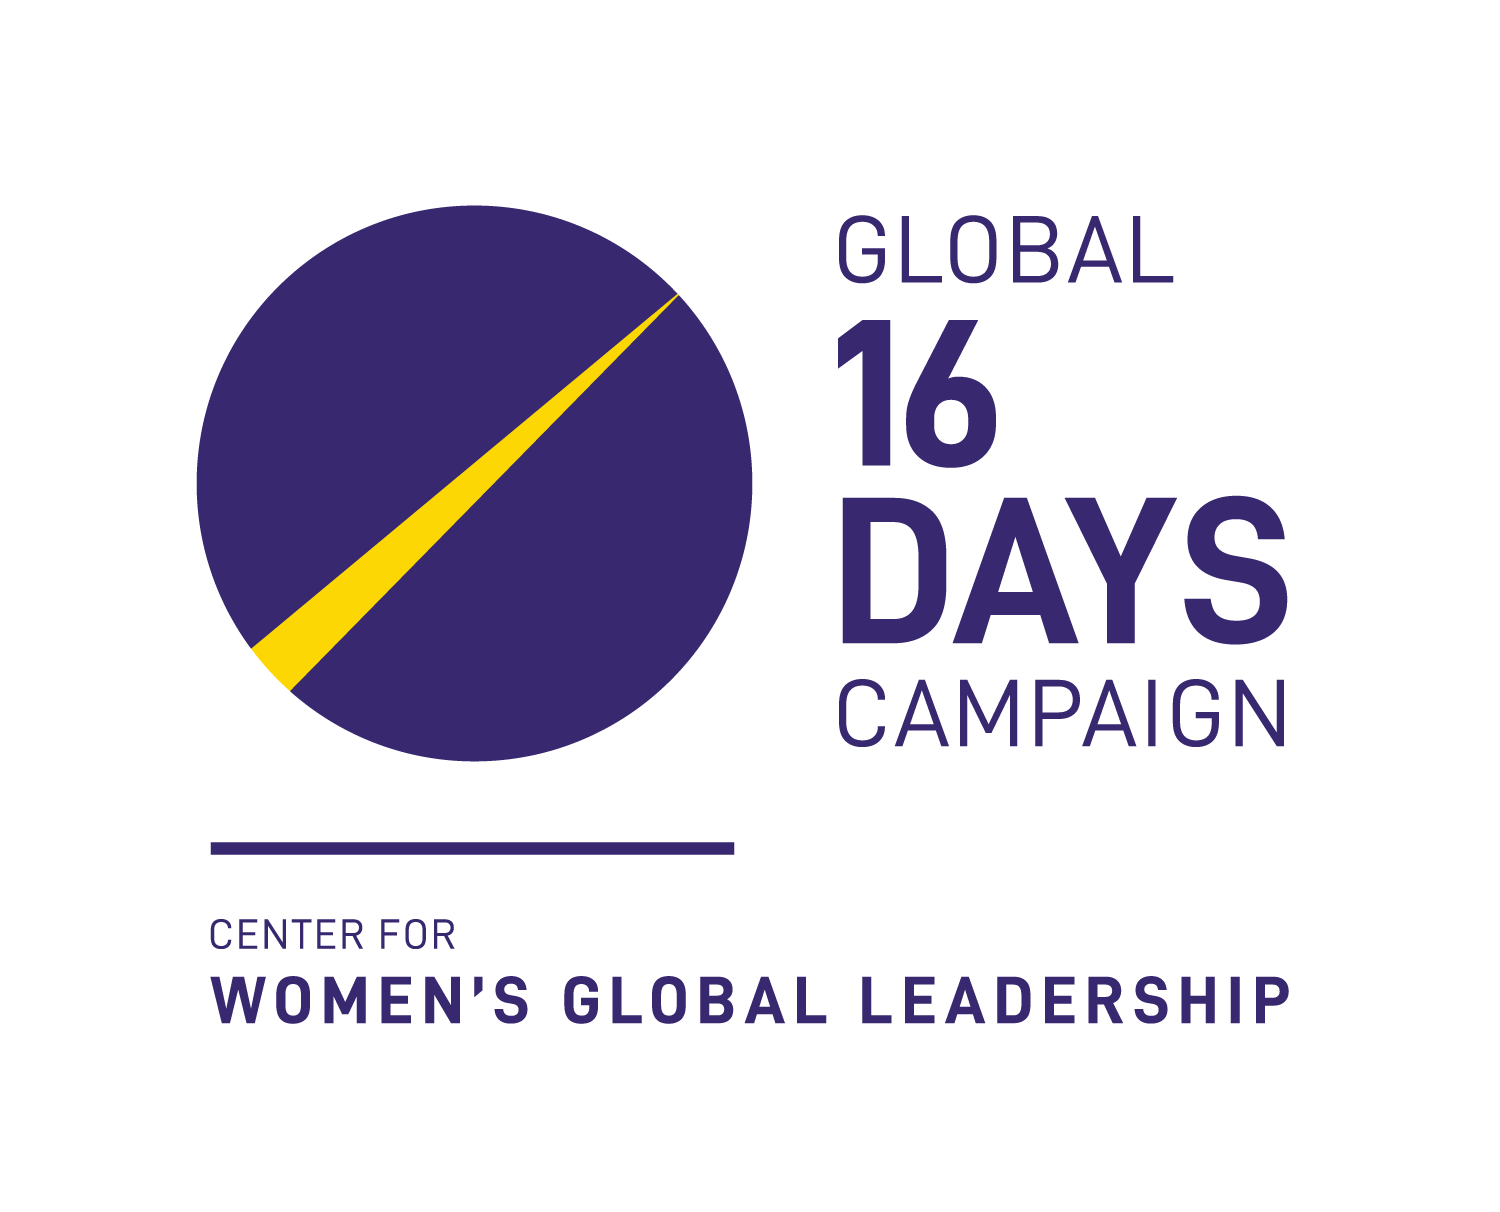 Global 16 Days Campaign - From Awareness to Accountability